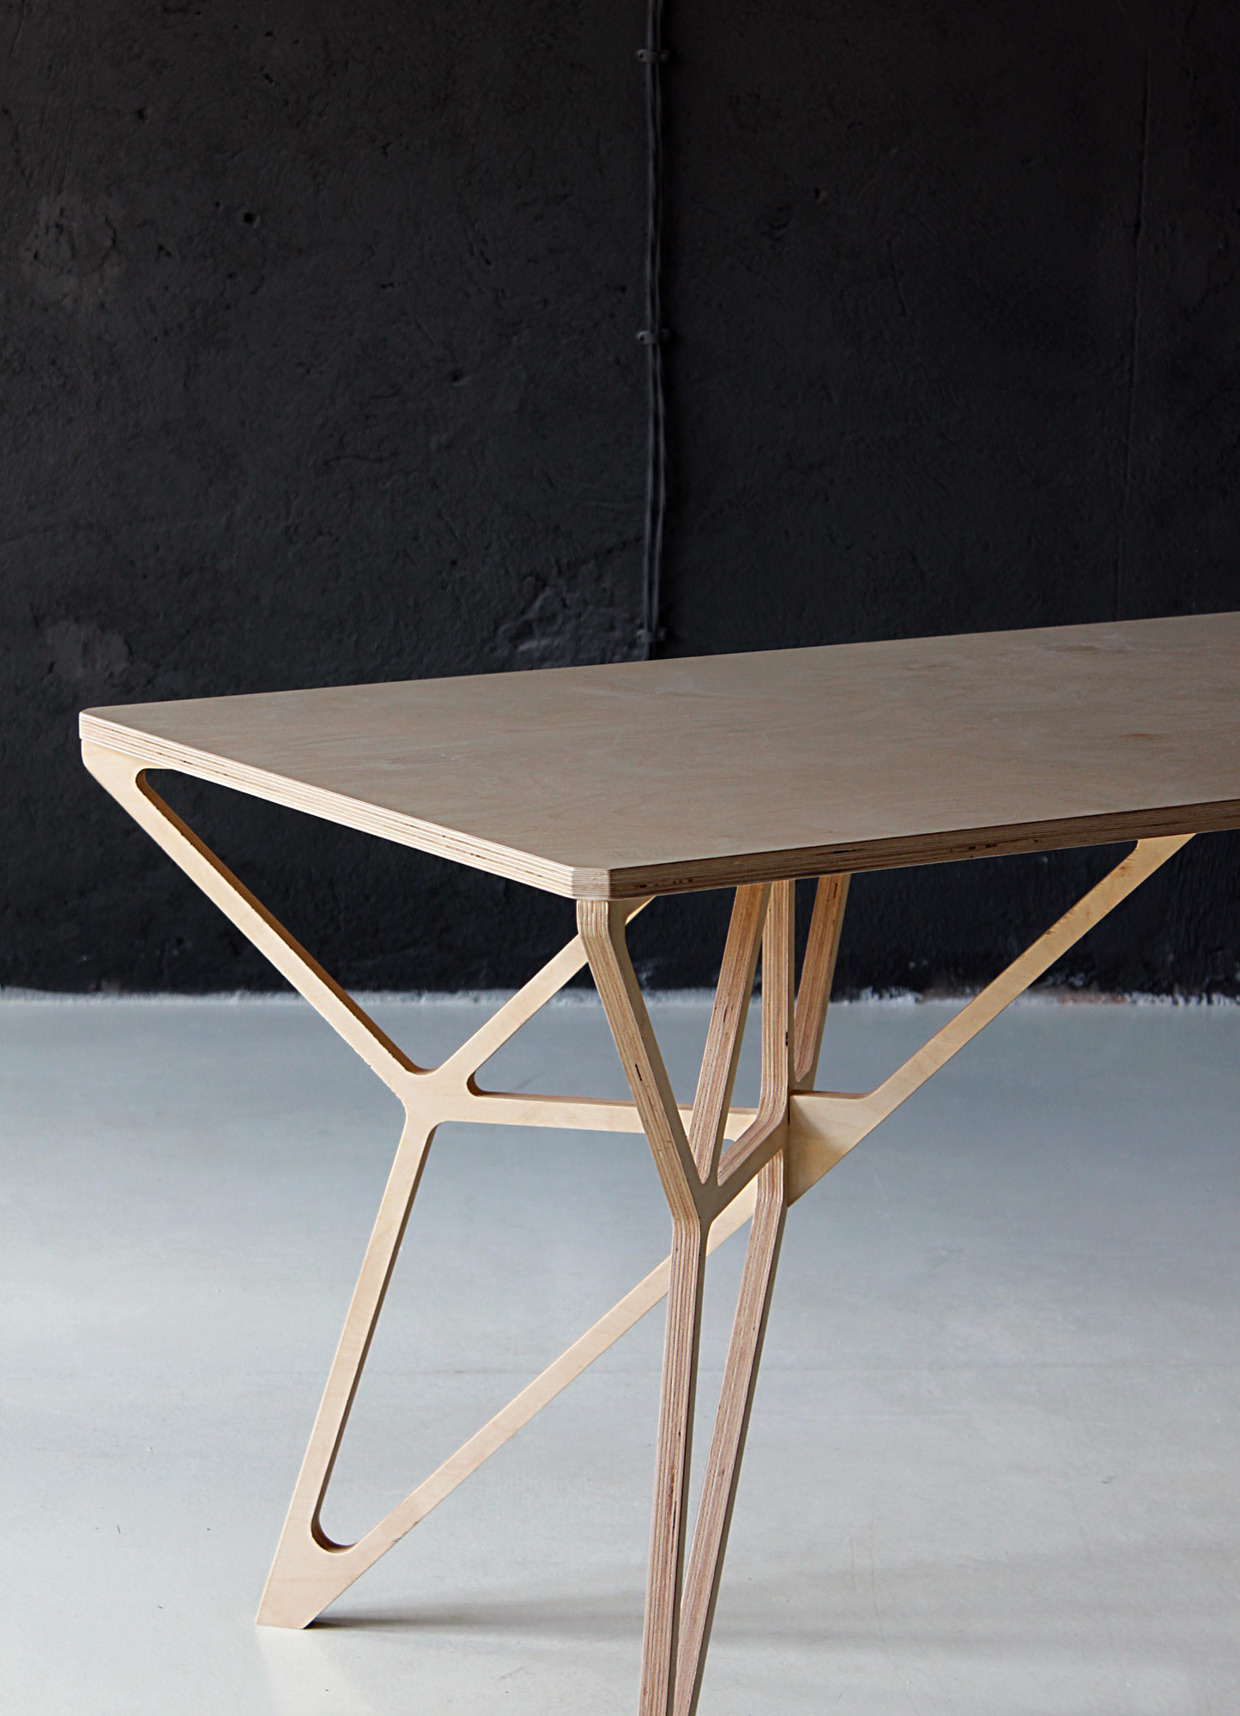 Furniture_P01_Plywood-dontDIY-7